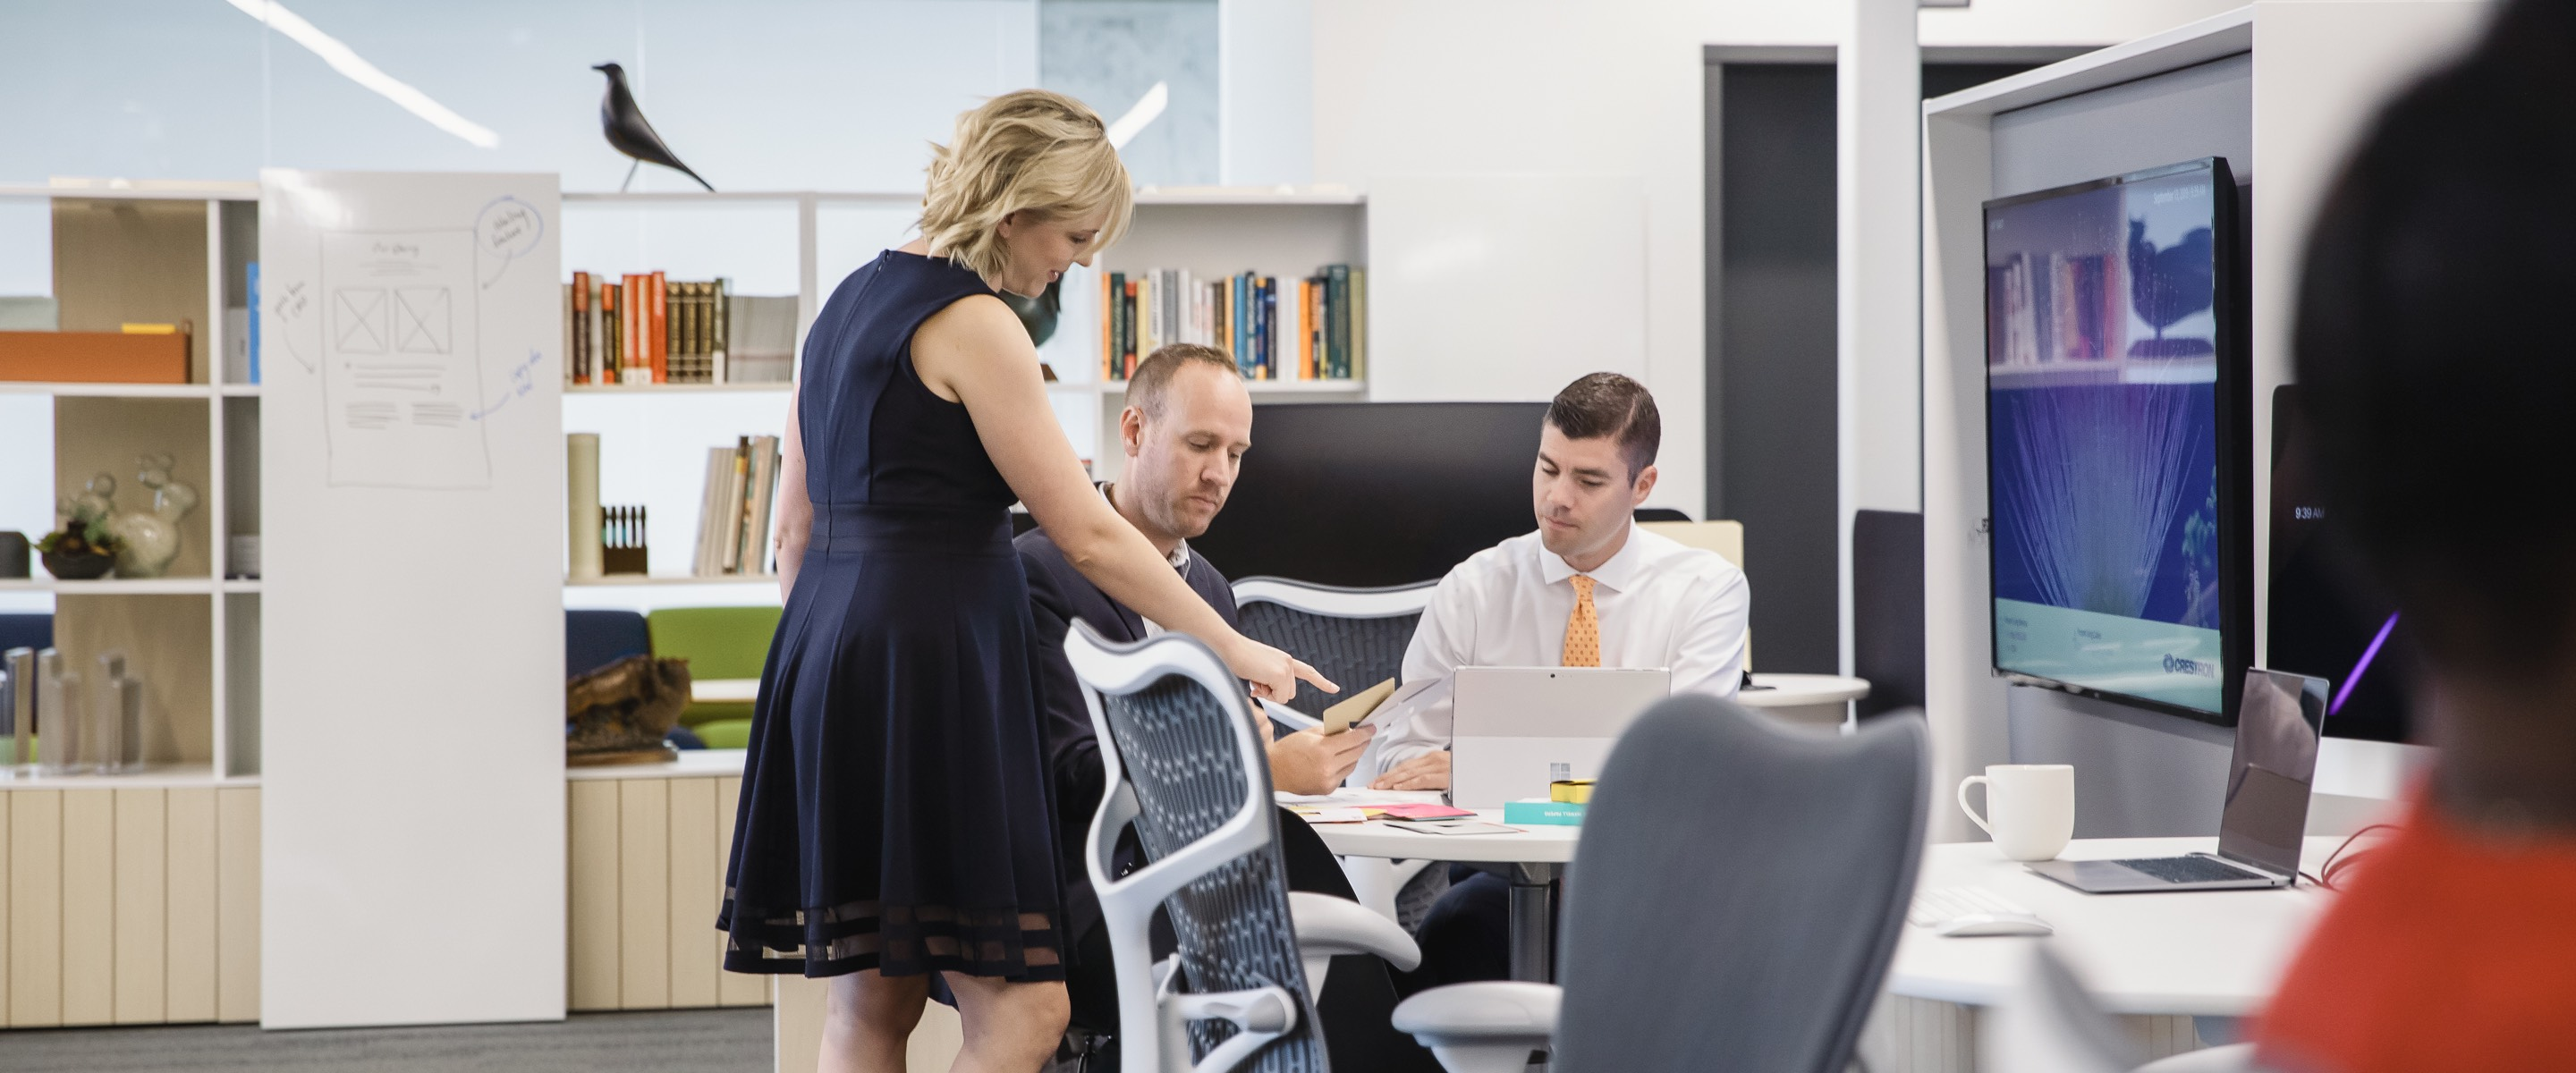 Three people working together in a collaborative space with a table, gray Mirra 2 Chairs, and a monitor on the wall.